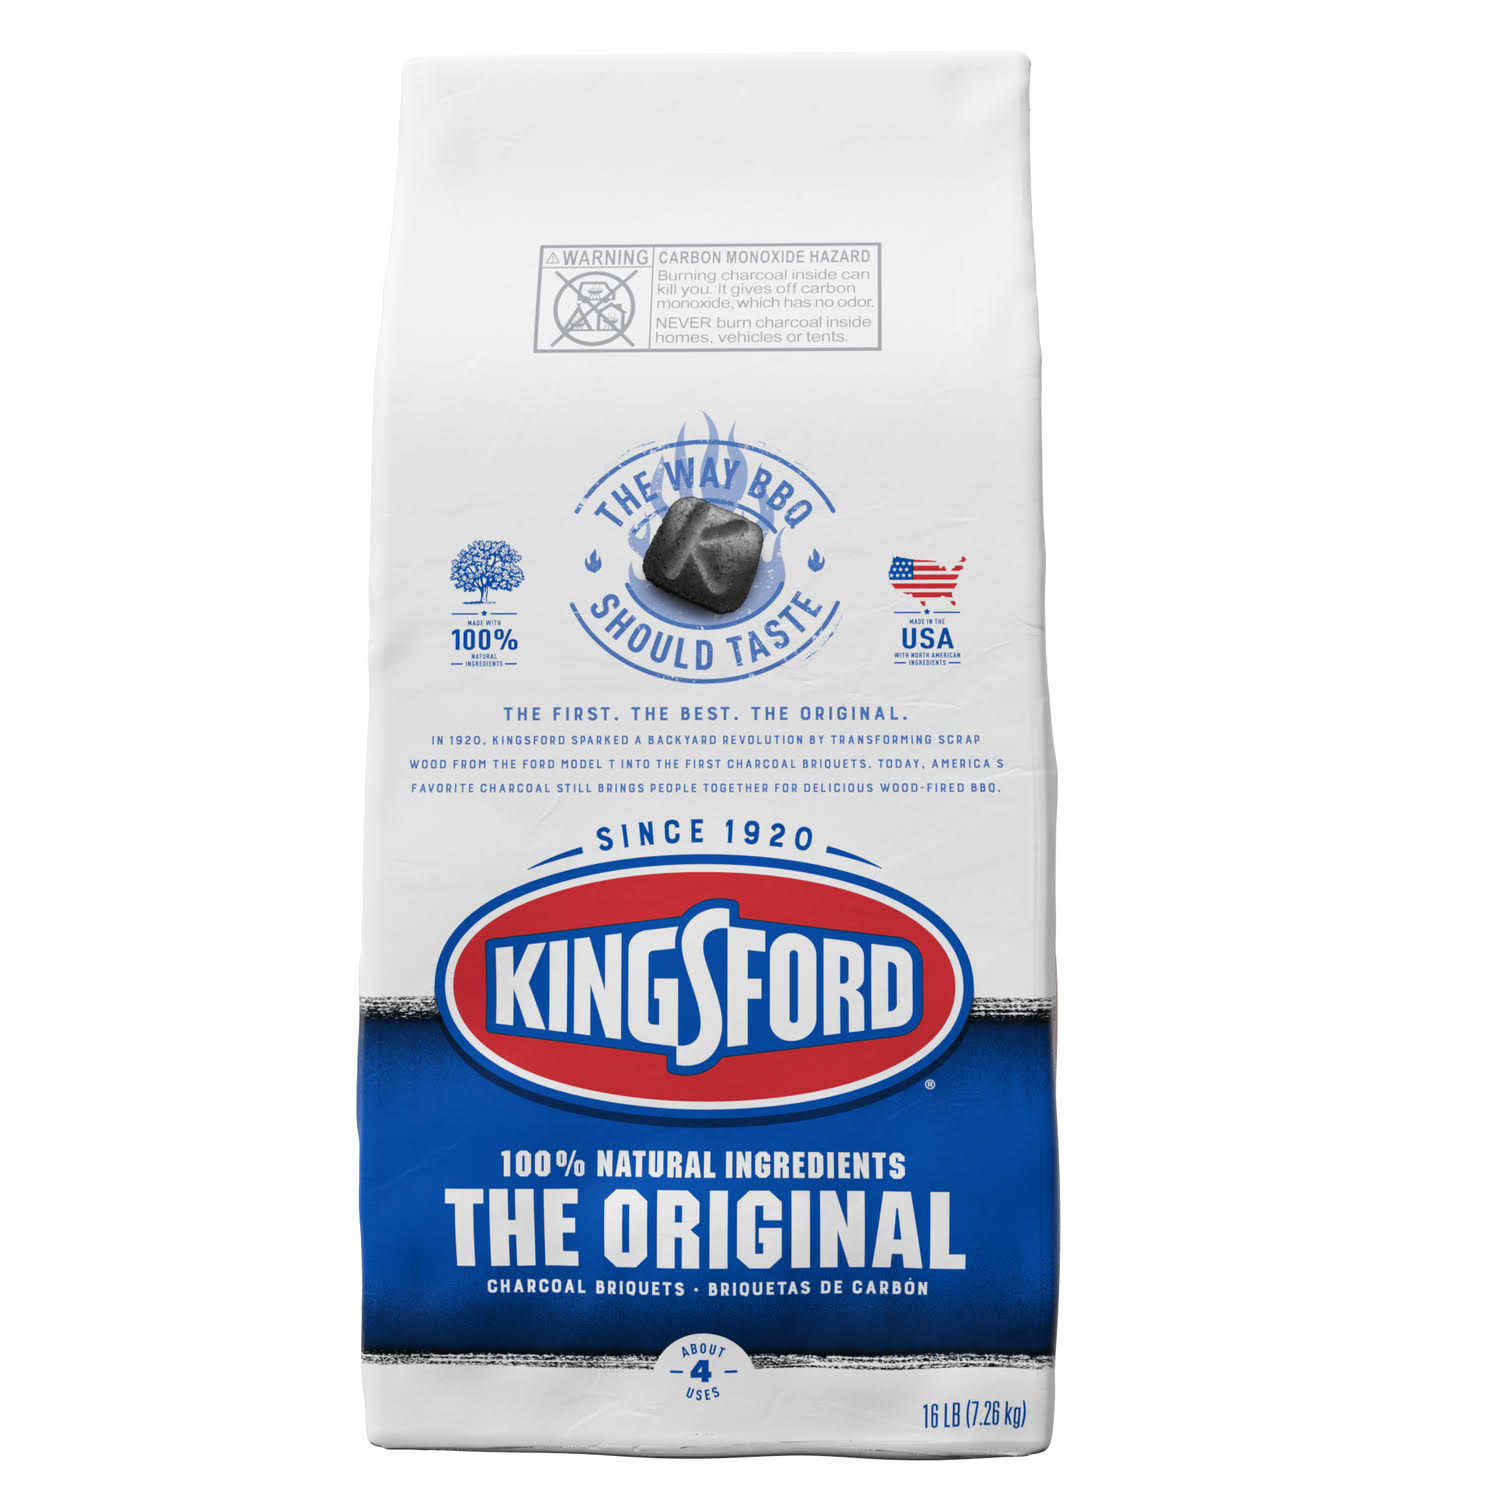 Kingsford Charcoal Briquets, The Original - 16 lb